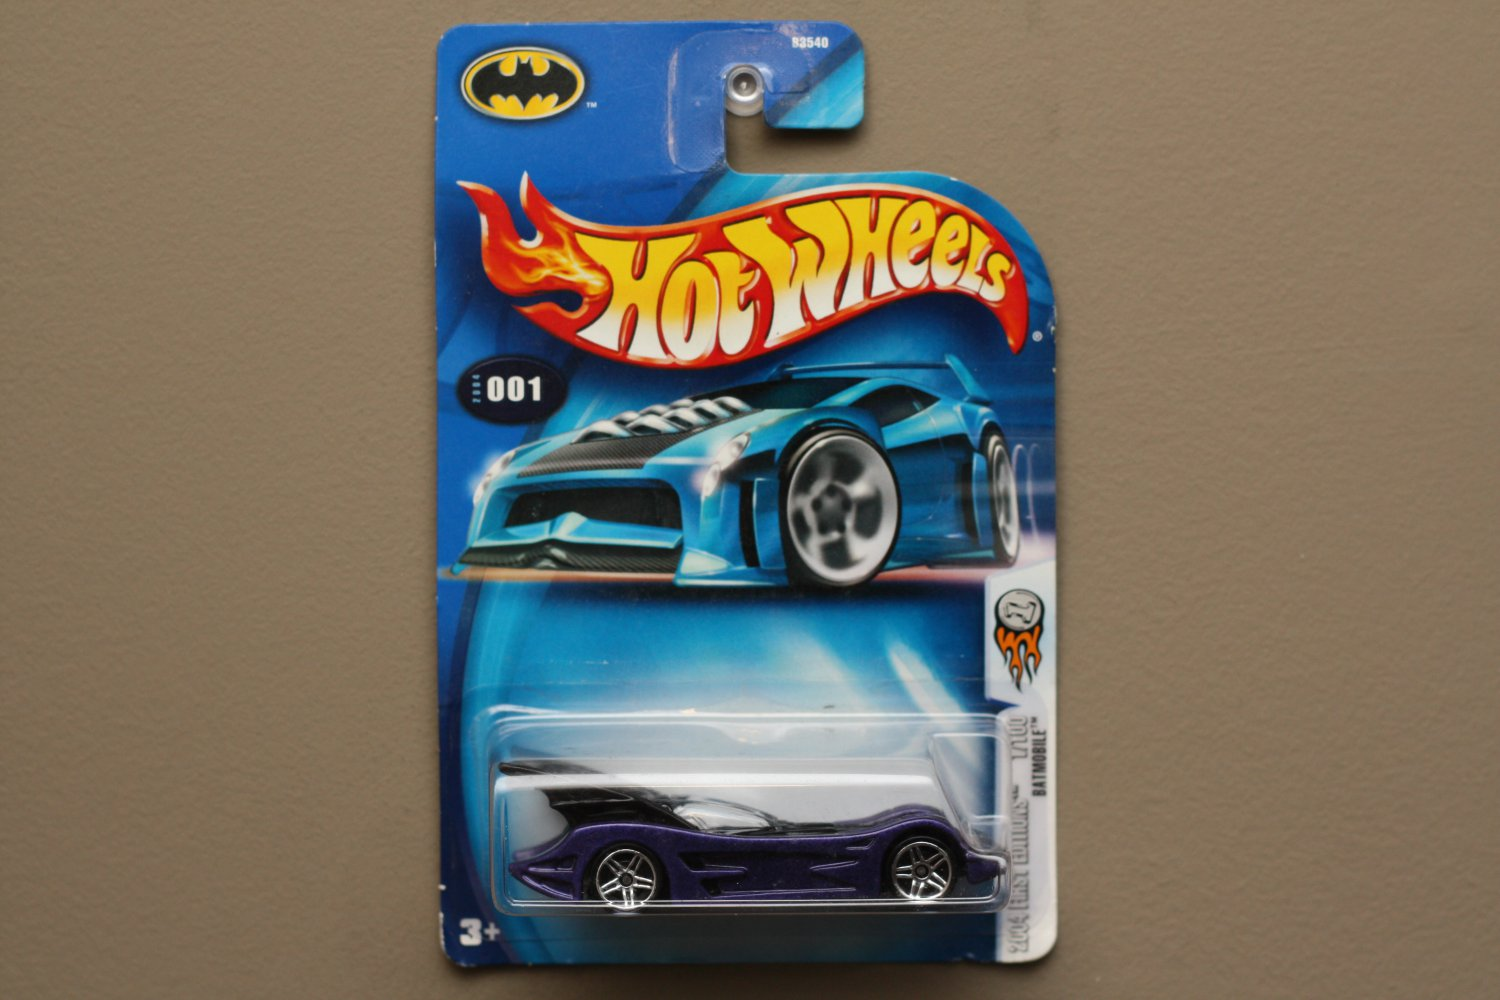 Hot Wheels 2004 First Editions Batman Batmobile (purple/black) (SEE CONDITION)